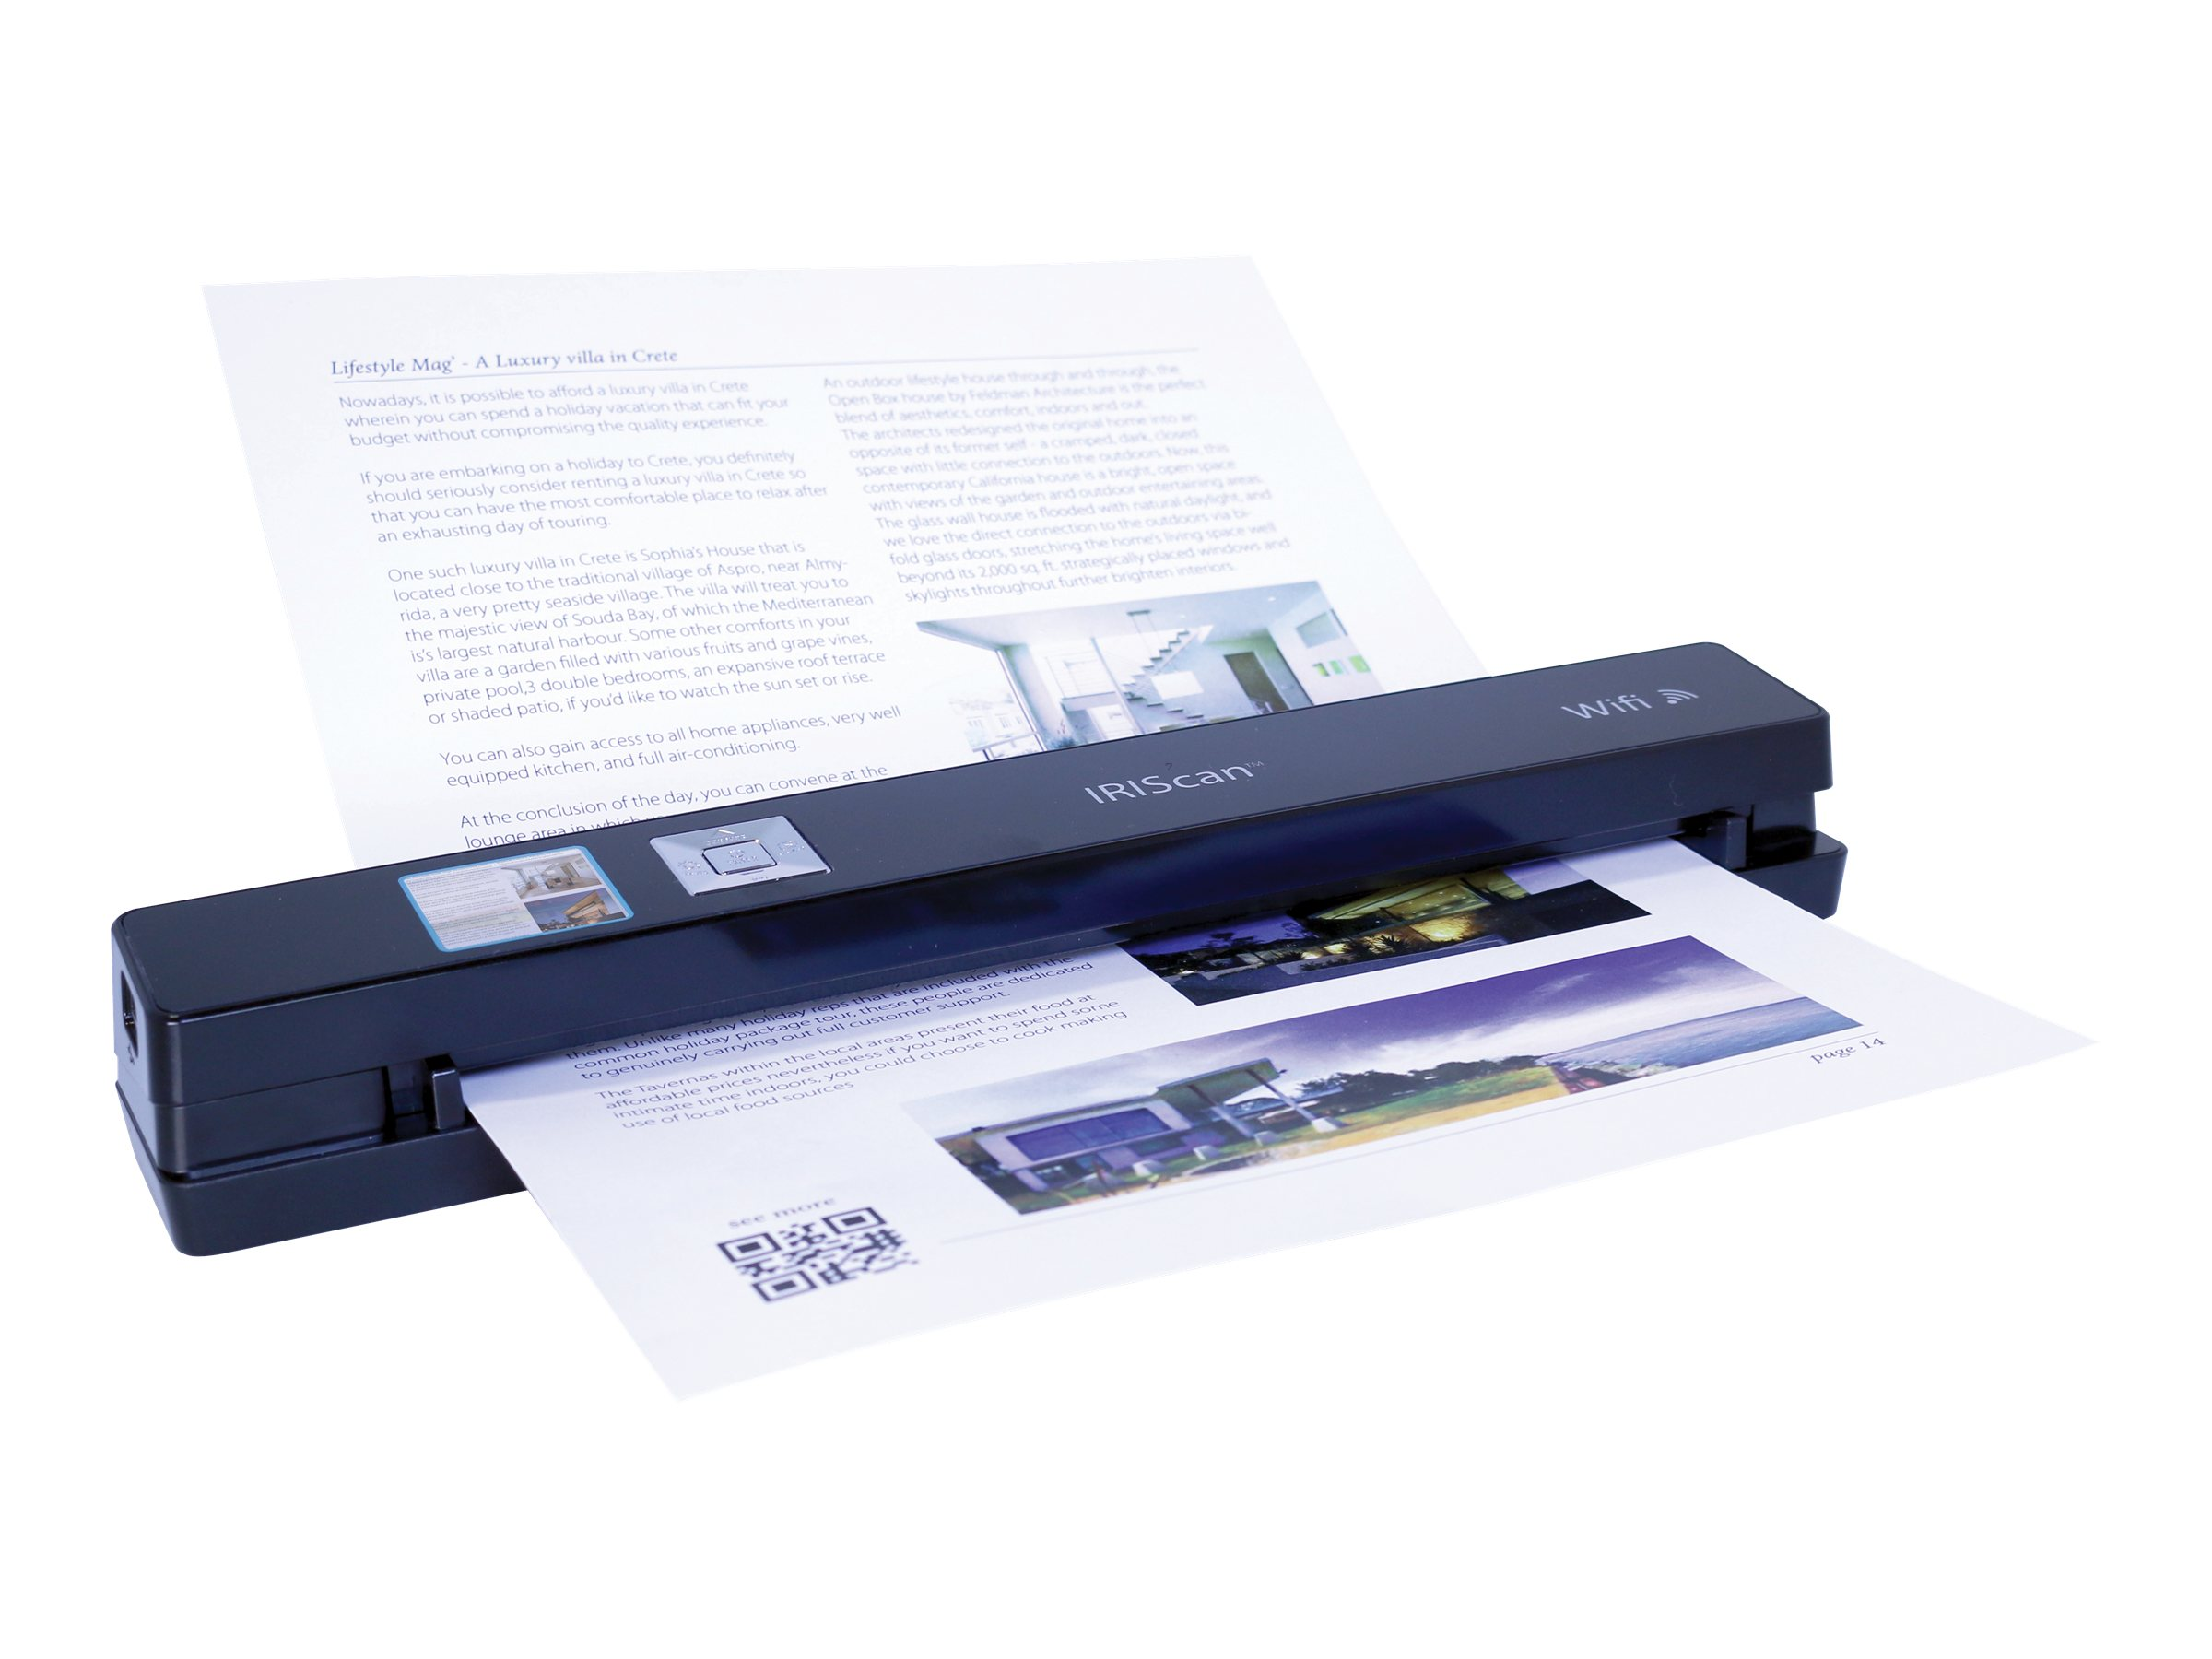 IRIS Iriscan Anywhere 3 WiFi Mobile Sheet-fed Scanner, 458129